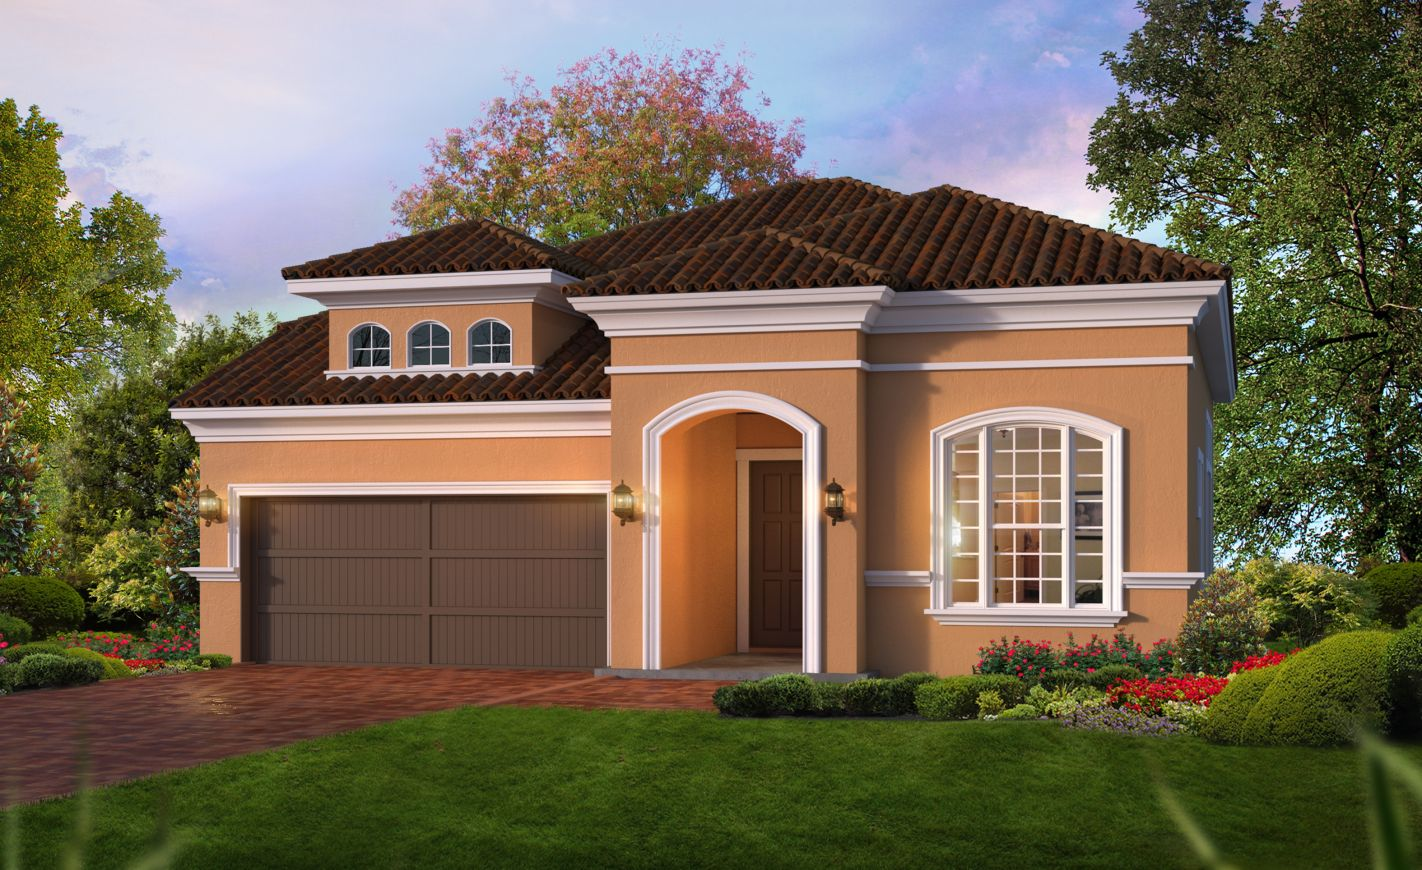 Jacksonville Homes for Sale - The Taylor at Tamaya